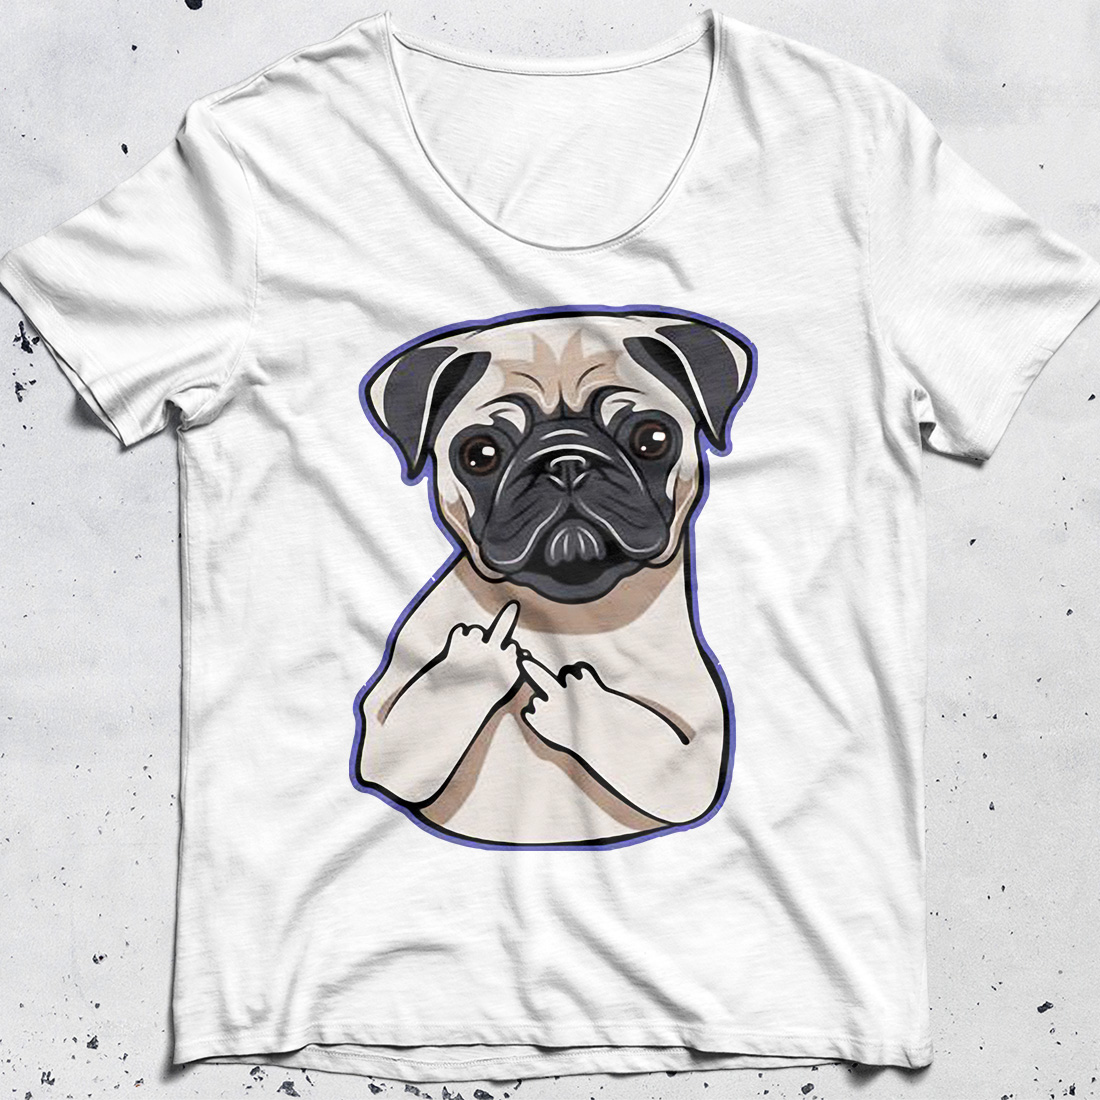 Pug Middle Fingers Up shirt